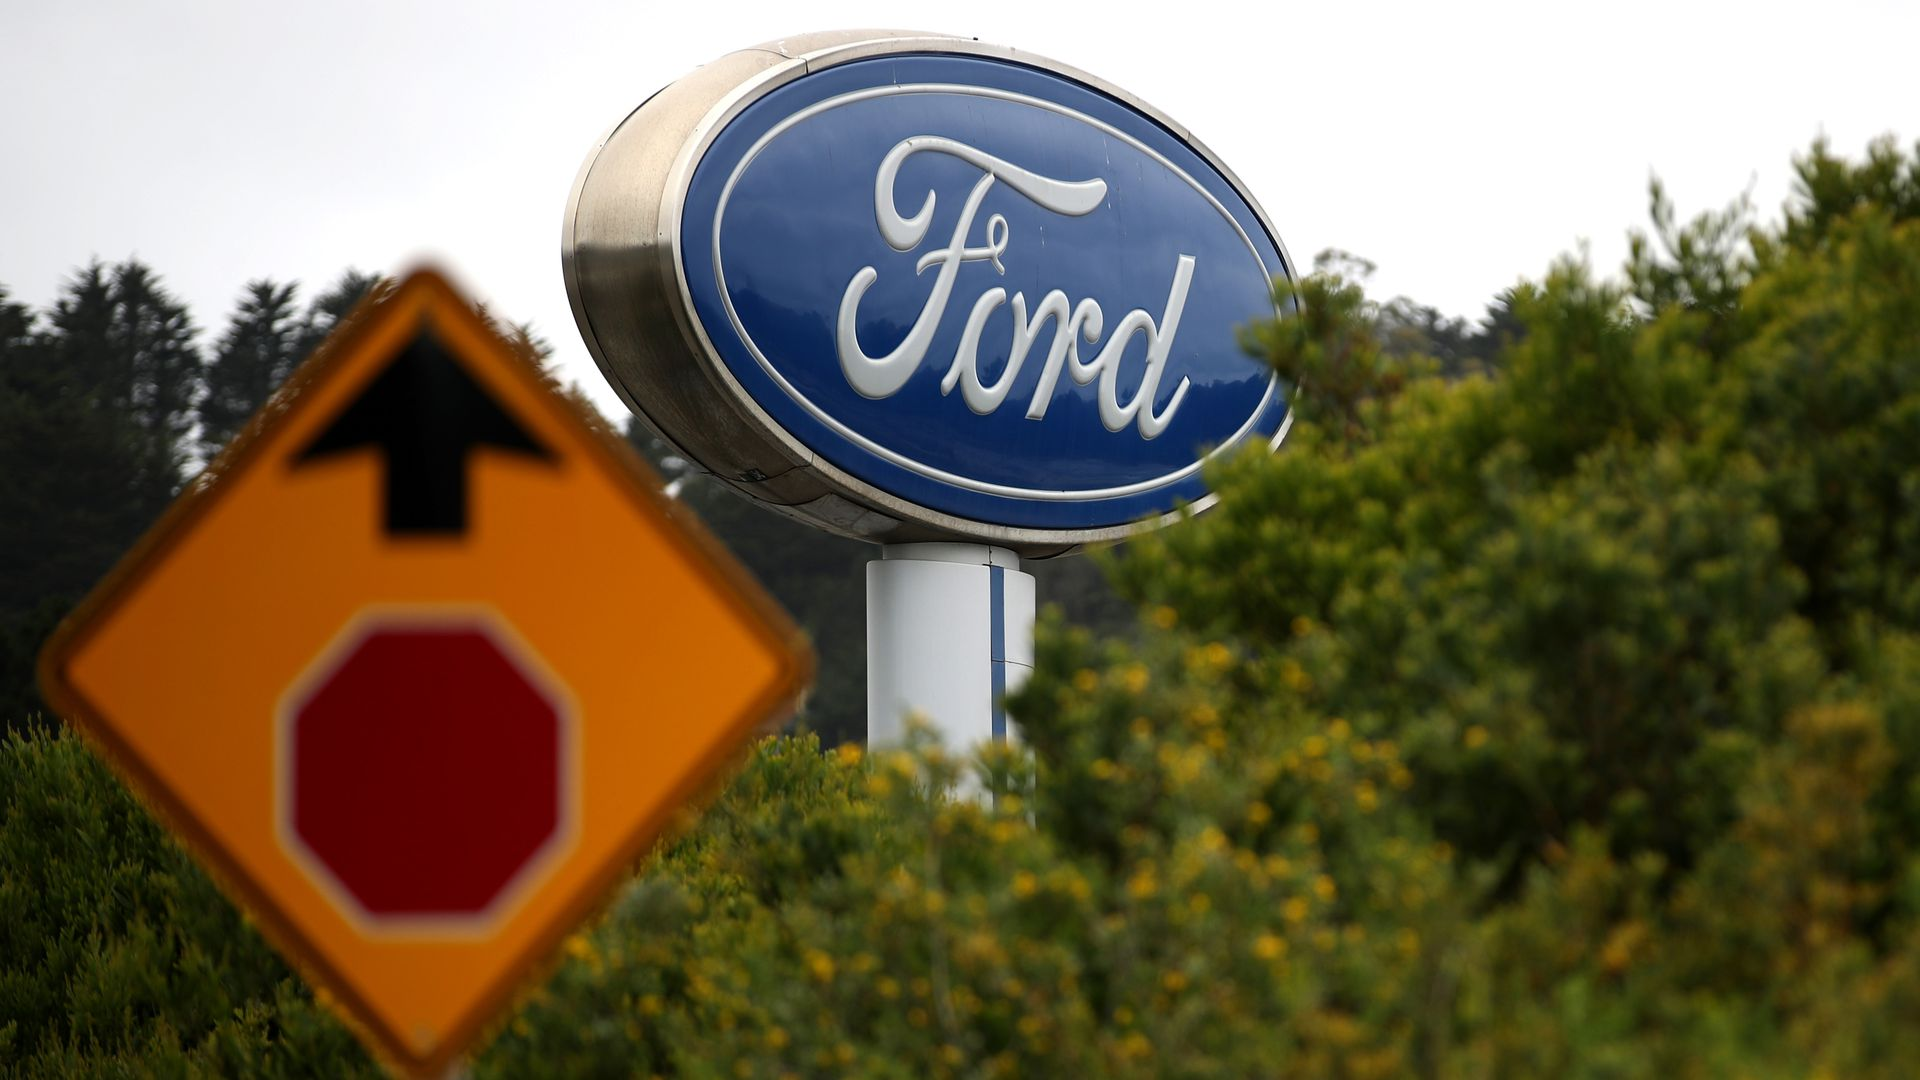 The Ford logo on a sign